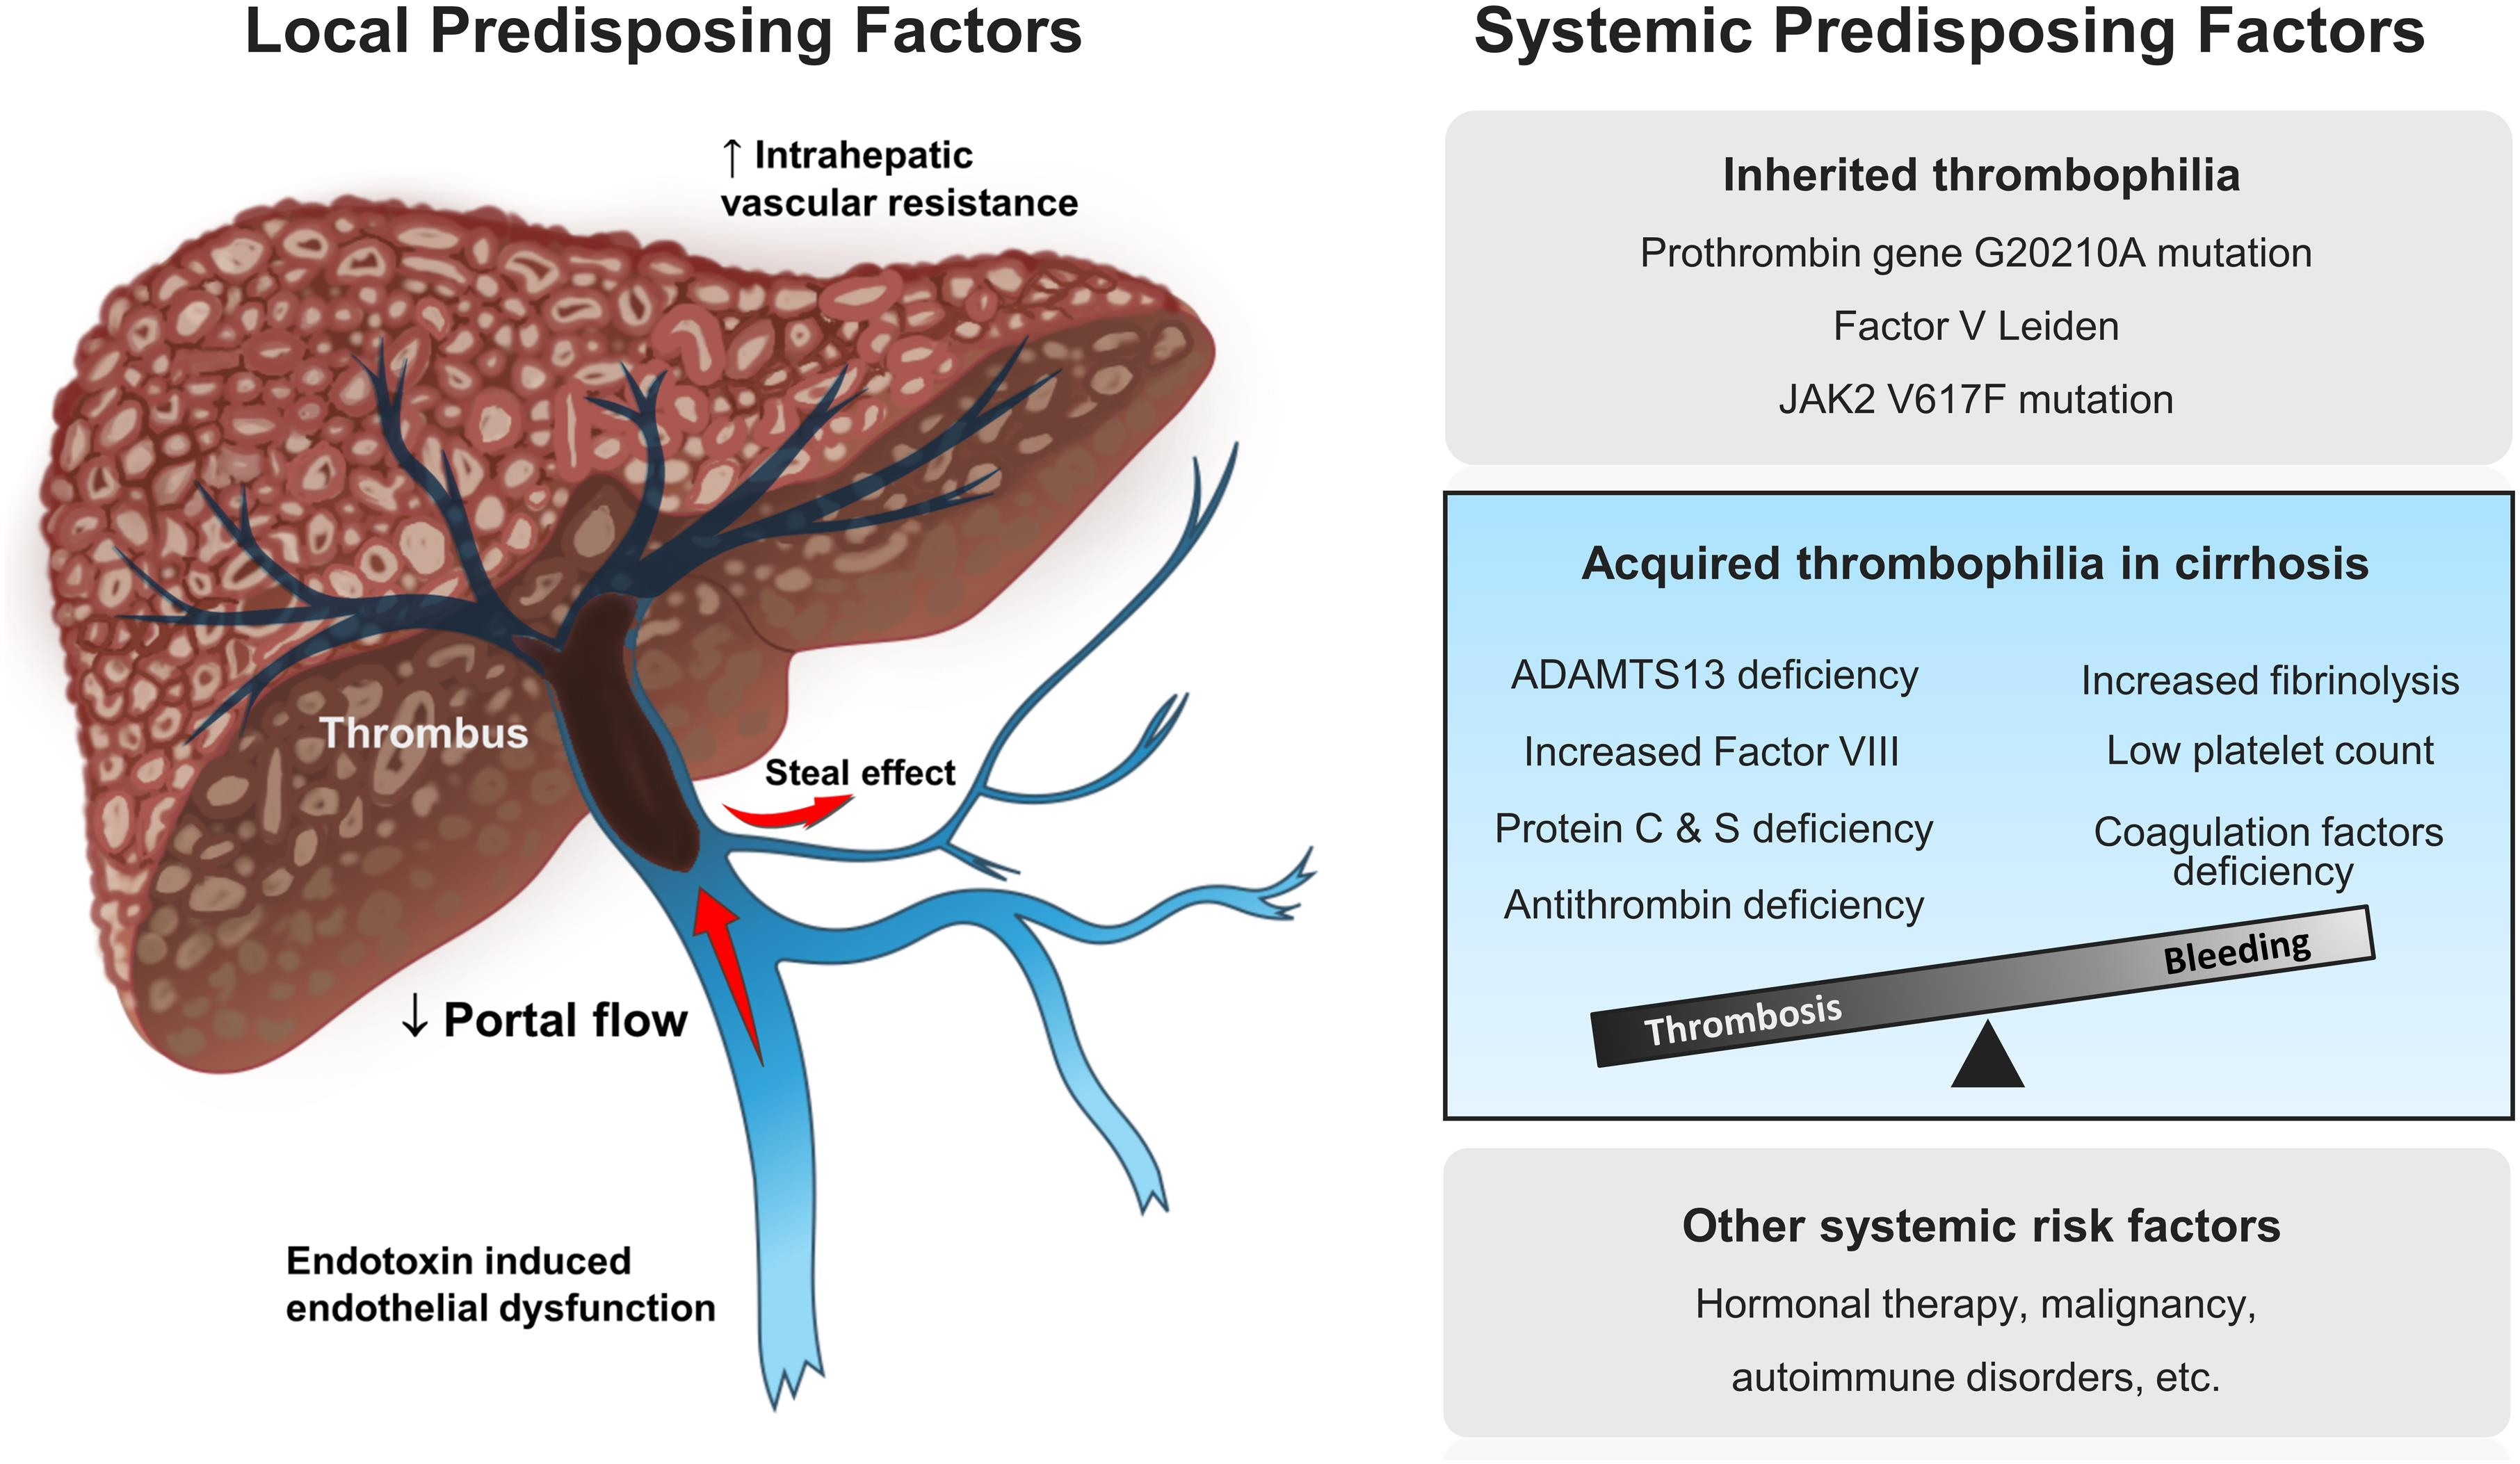 <bold>Pathogenesis of nontumoral portal vein thrombosis (PVT) in liver cirrhosis.</bold> Both local and systemic factors have been involved in the development of PVT in patients with cirrhosis. The portal venous system in cirrhosis represents a local predisposing factor prone to thrombus formation by reduced portal blood flow from portal hypertension and increased intrahepatic vascular resistance with the inflammatory milieu secondary to gut-derived bacterial lipopolysaccharide. Cirrhotics have been traditionally considered prone to bleeding due to thrombocytopenia, defects of procoagulant factors, and fibrinolysis. However, there is growing evidence that hypercoagulability is an important part of the hematological spectrum in cirrhosis. The unstable coagulation balance can be tiled toward thrombosis if any acute insult ensues.